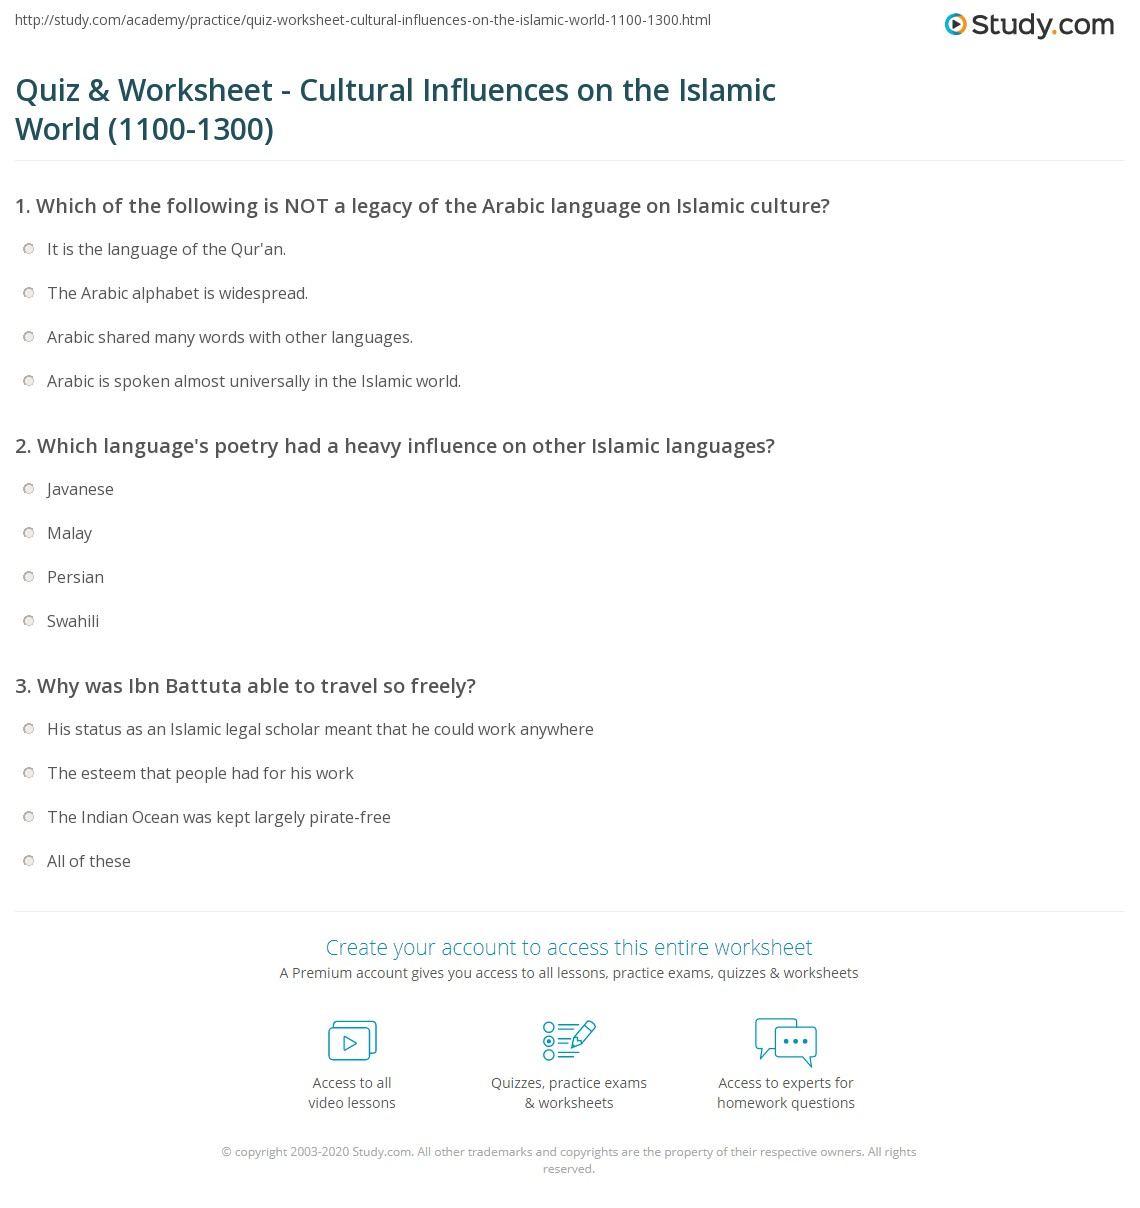 Quiz worksheet cultural influences on the islamic world 1100 which languages poetry had a heavy influence on other islamic languages publicscrutiny Image collections